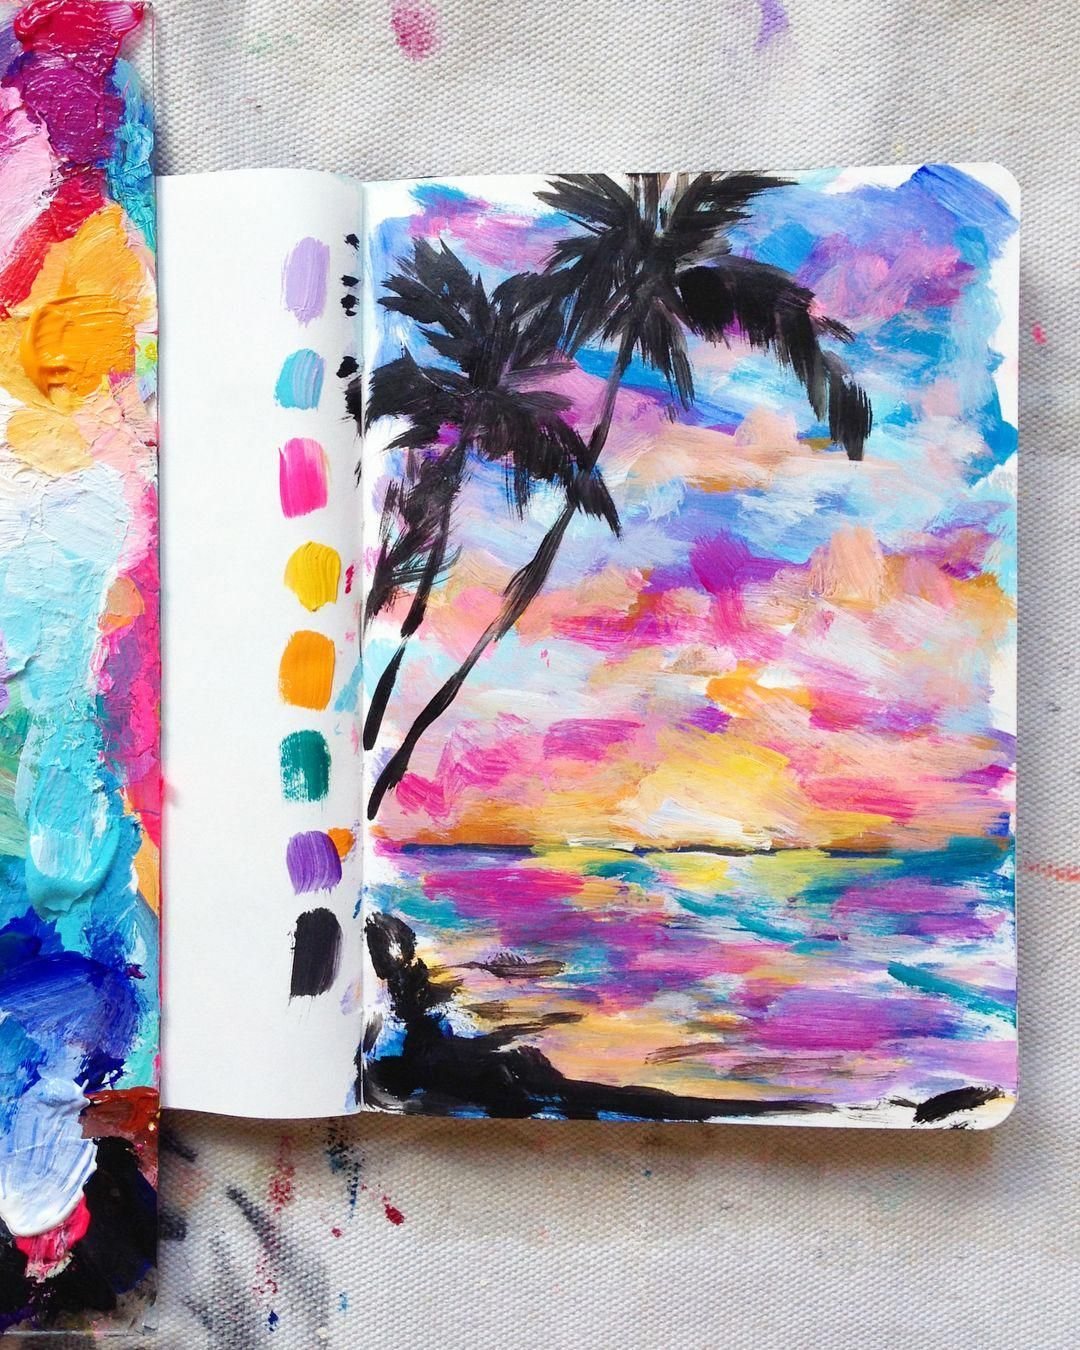 Pin On Sketchbook Art Journal